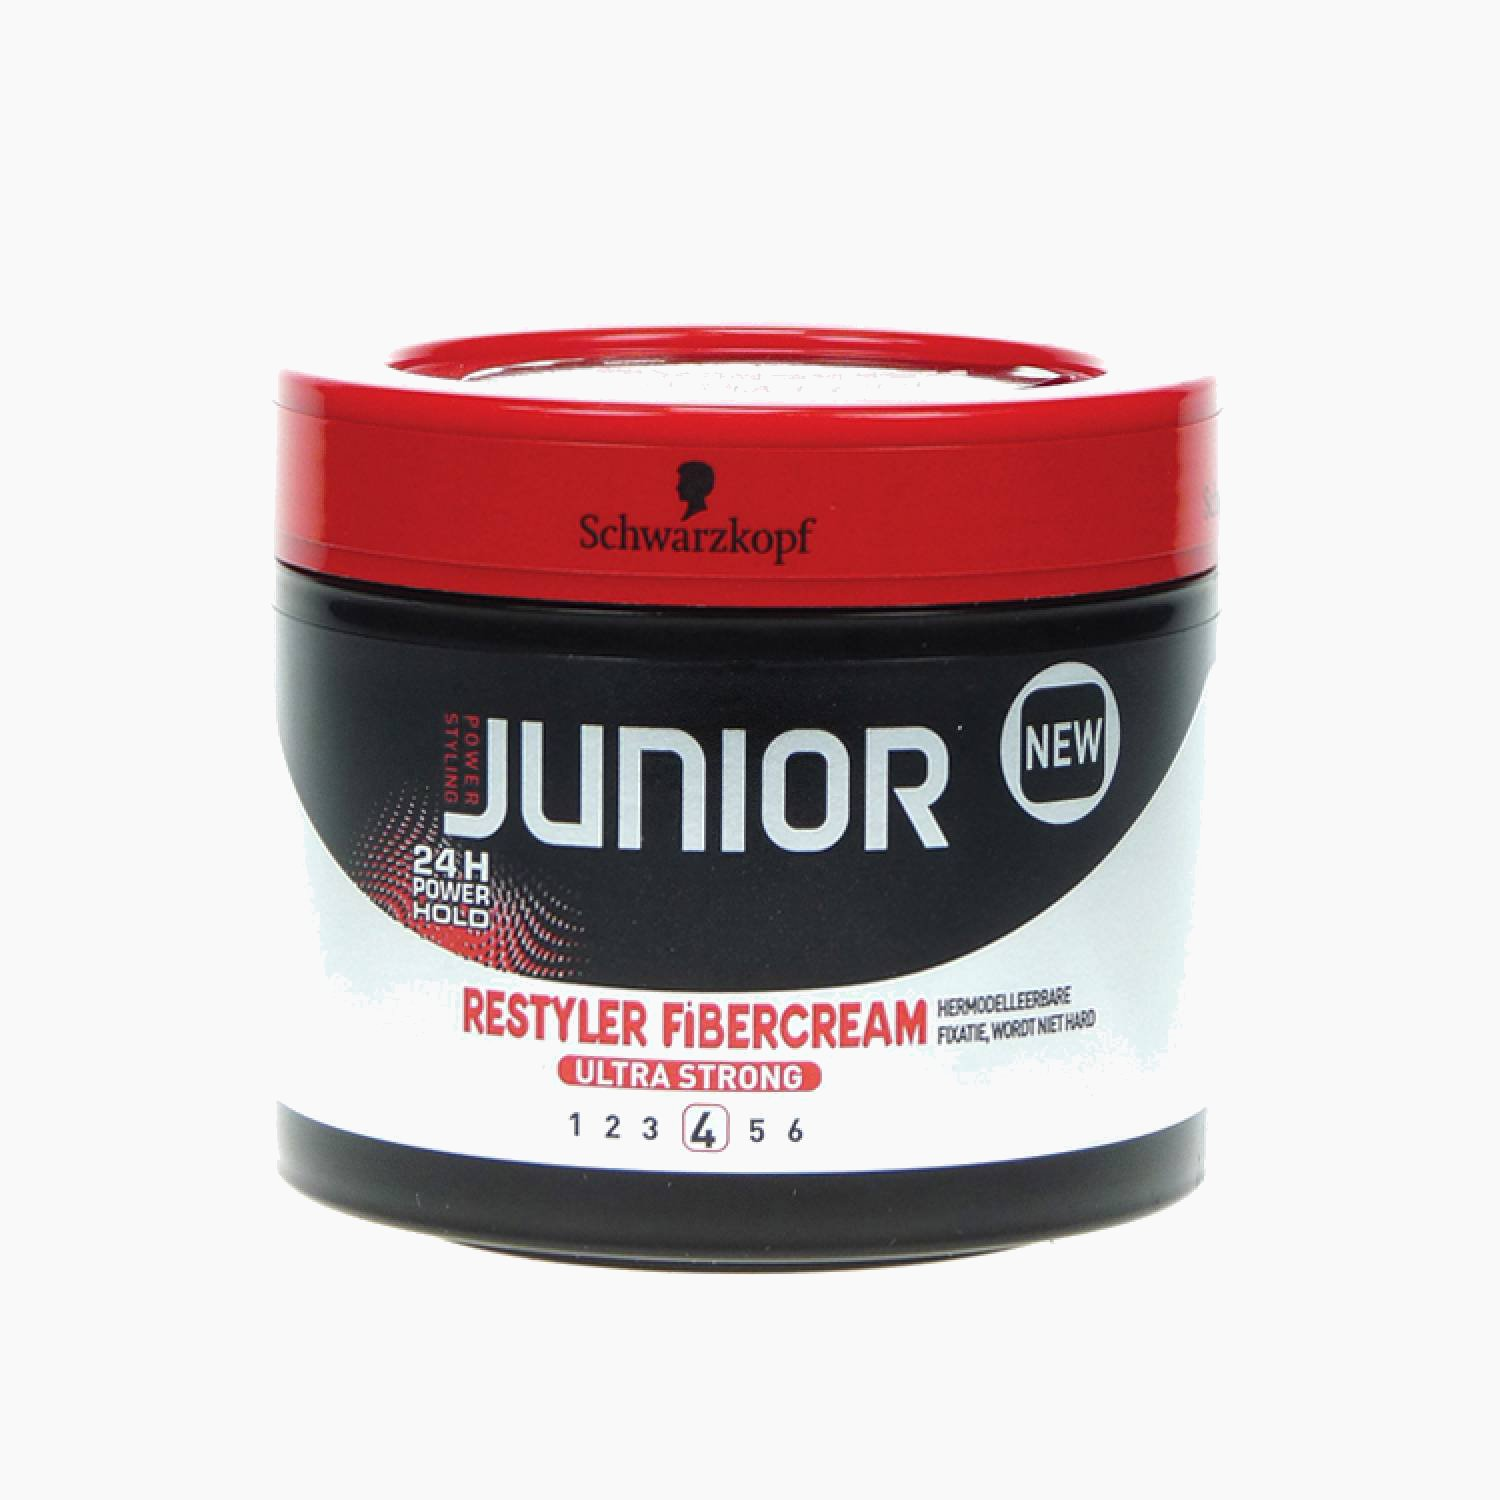 Junior Restyler Fibercream